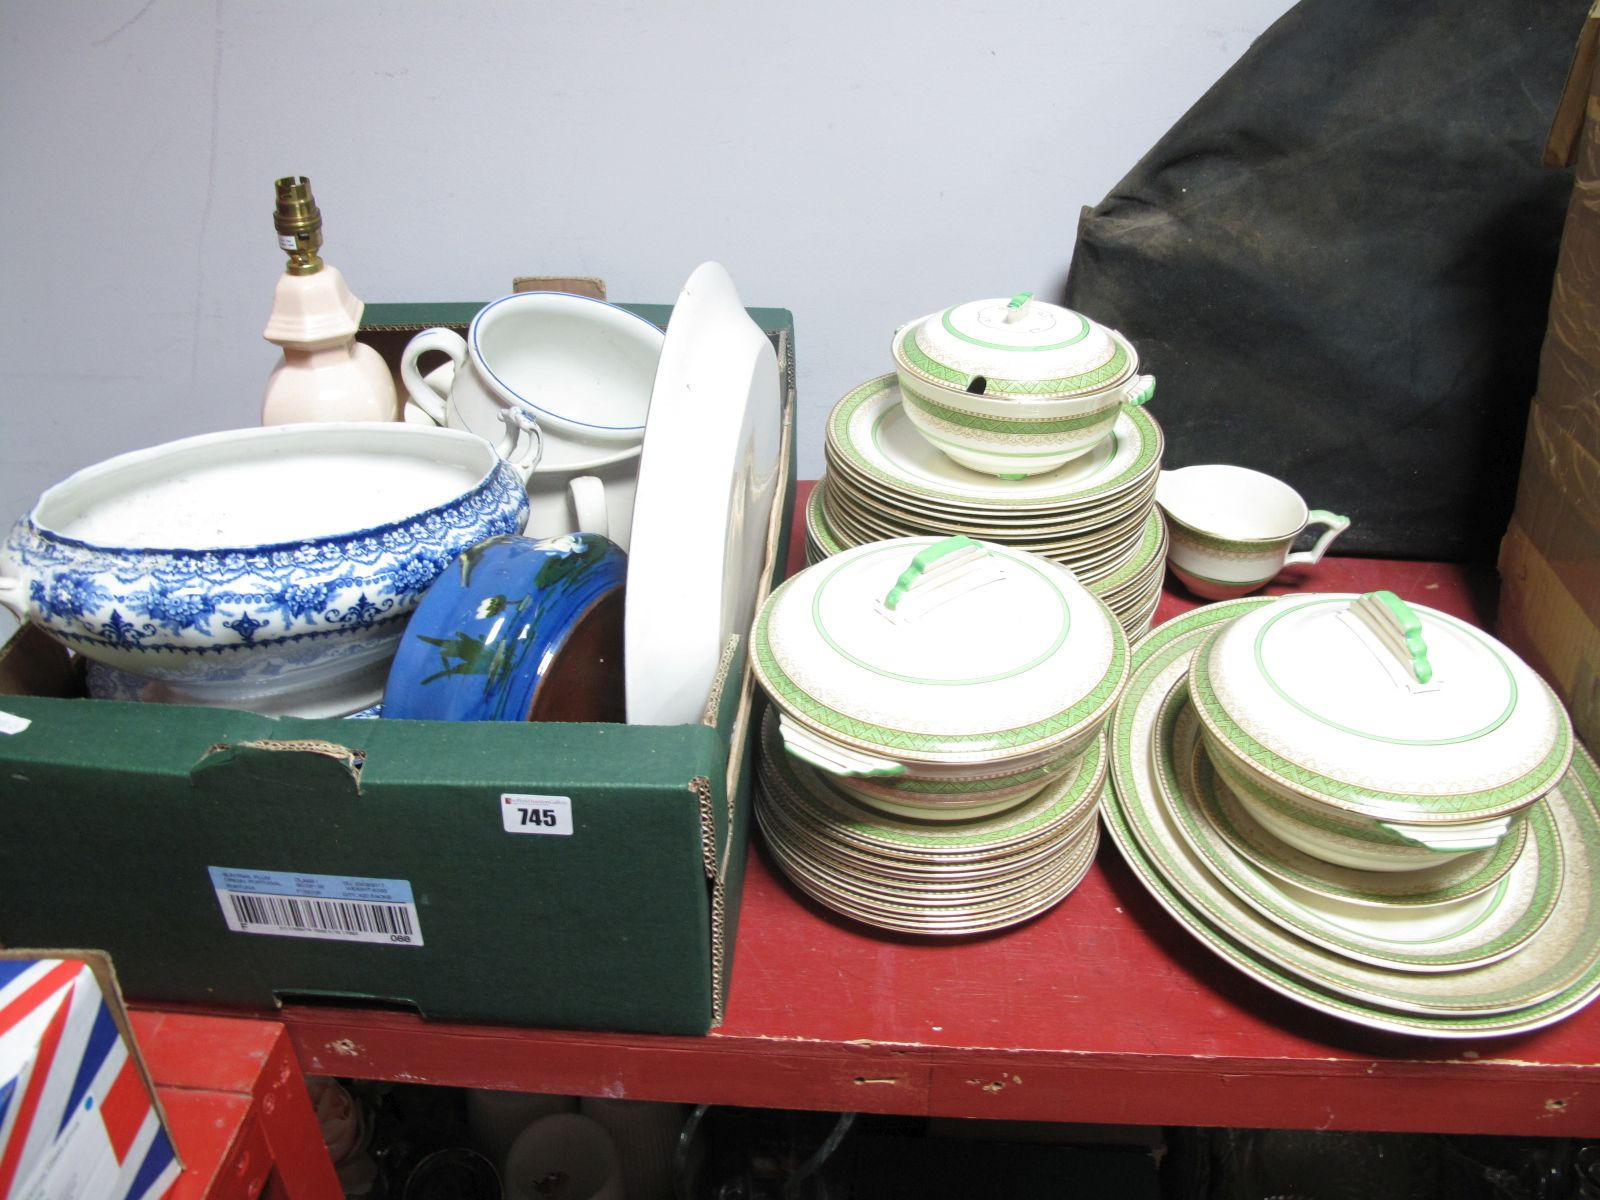 Lot 745 - A Circa 1920's/30's Crown Devon Part Dinner Service, over 40 pieces, dinner plates, side plates,